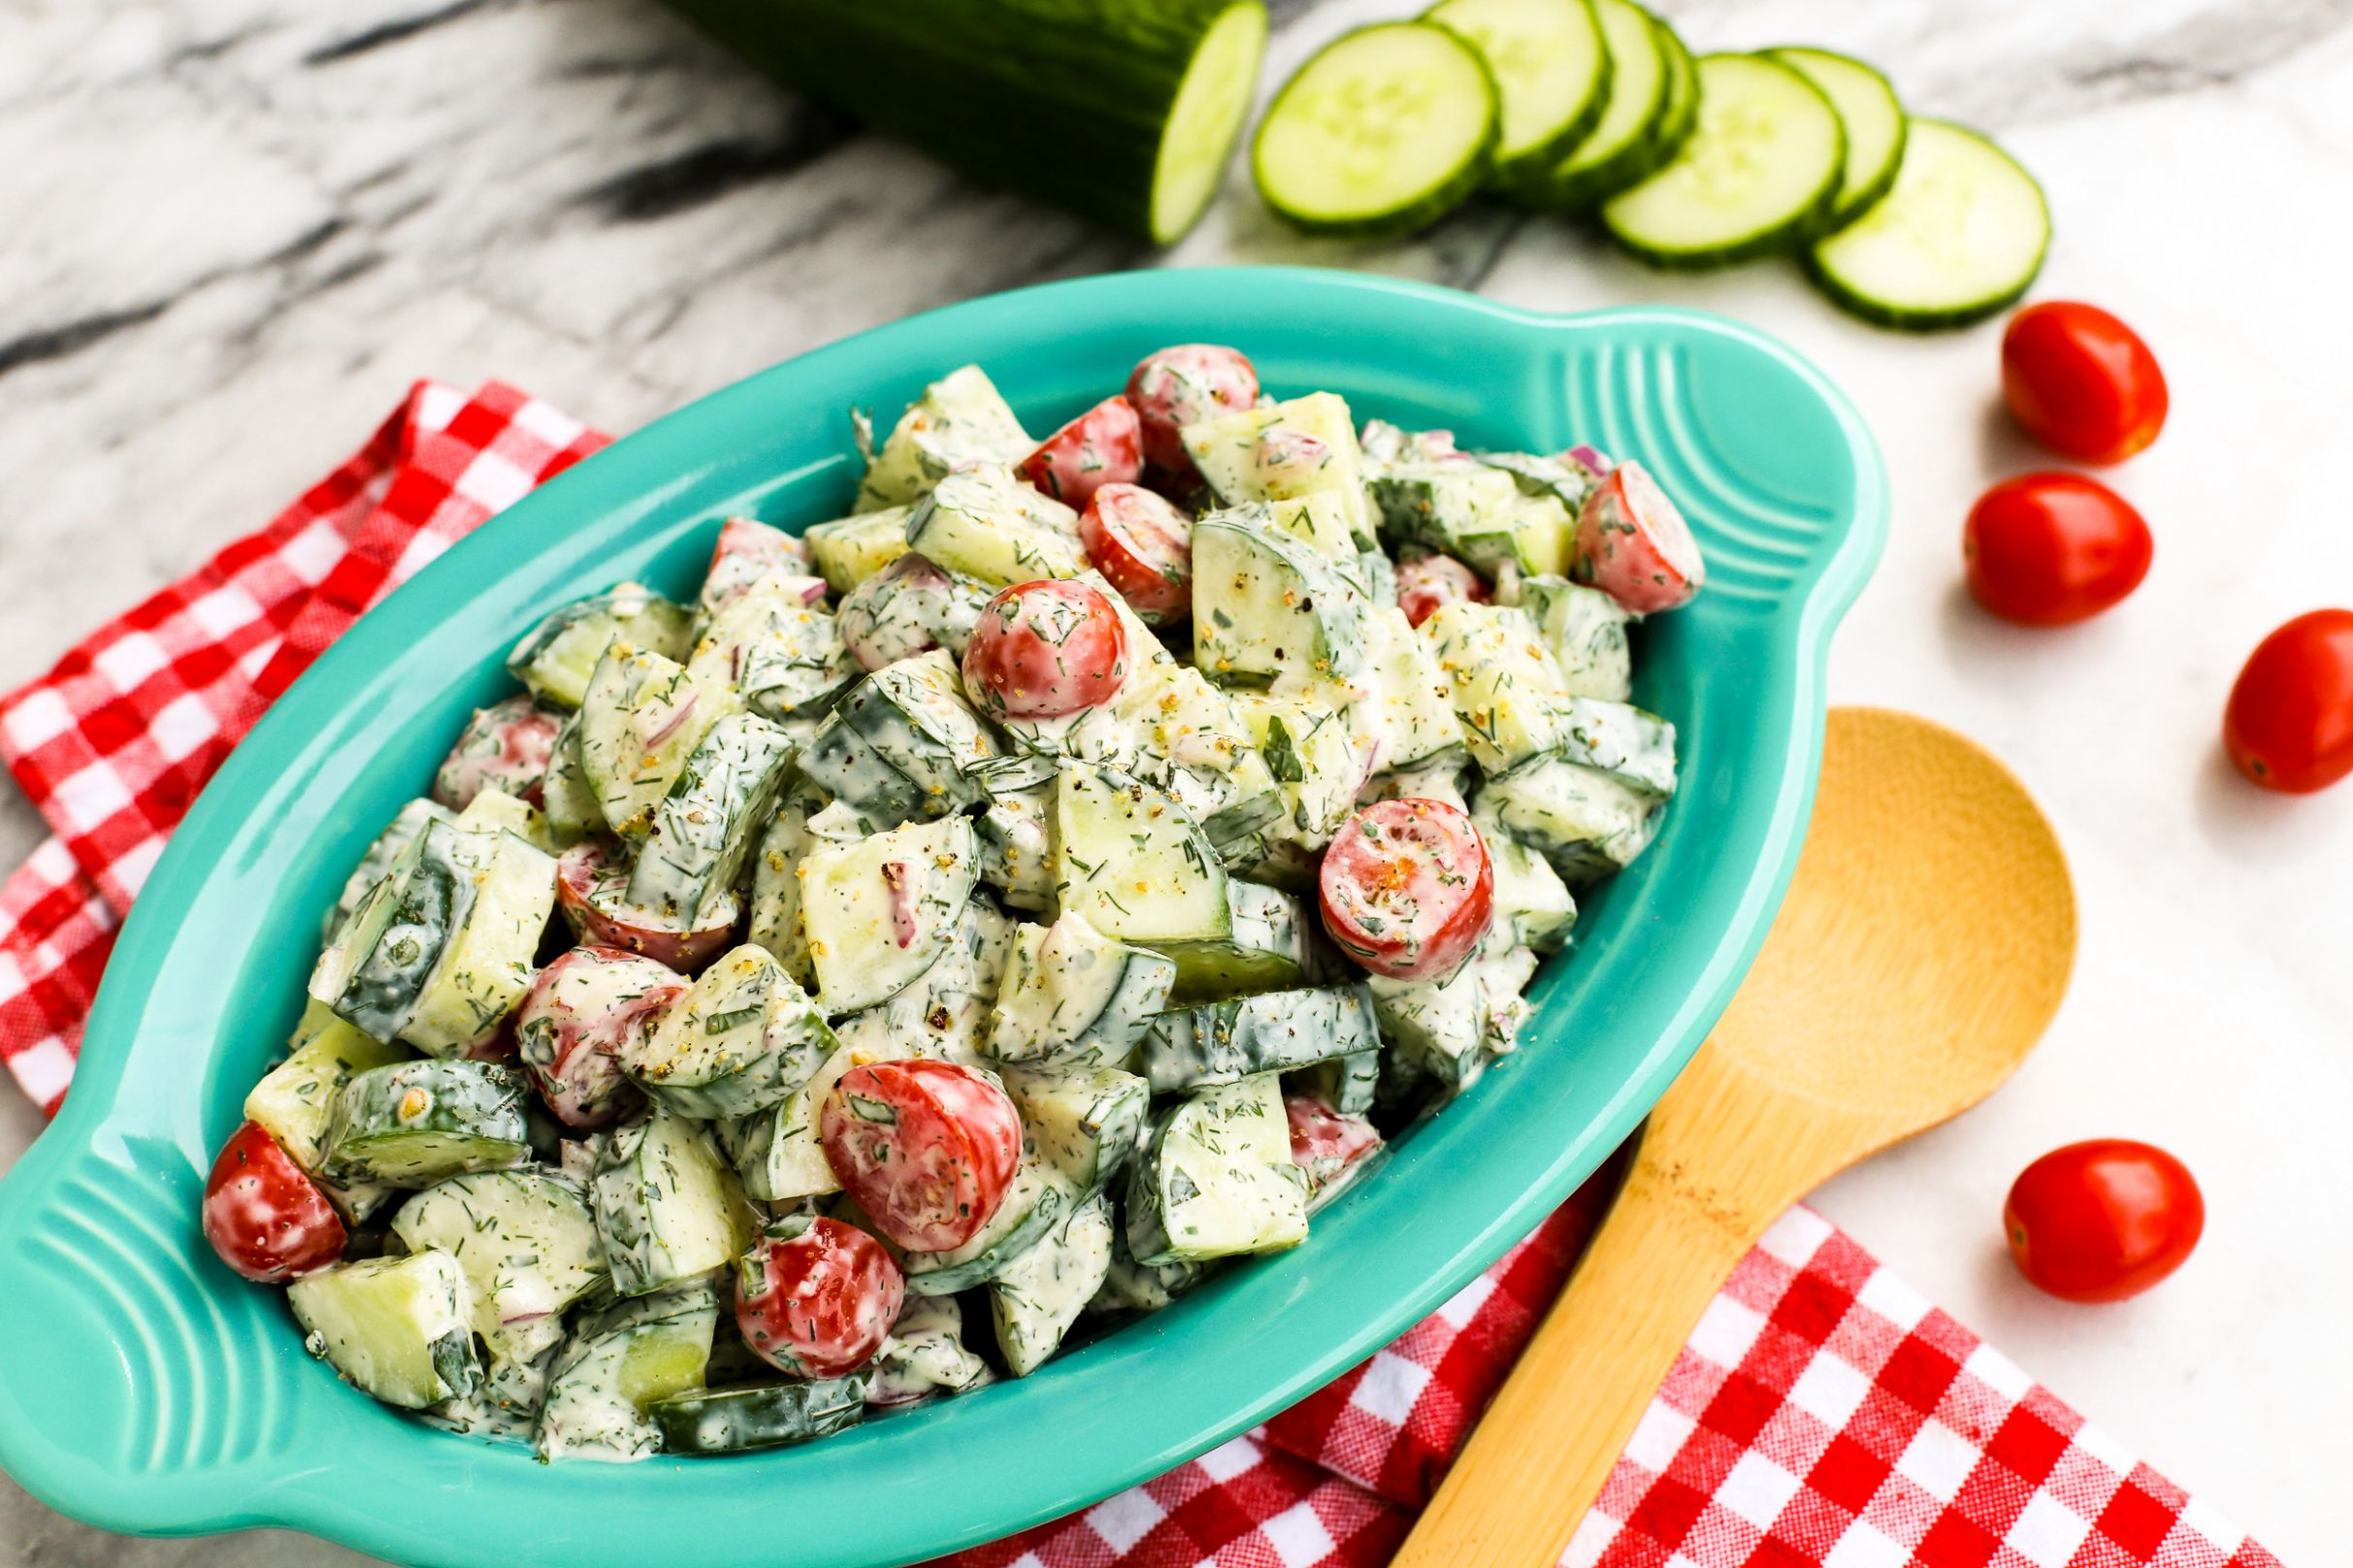 Cucumber Tomato Salad with Creamy Herb Dressing